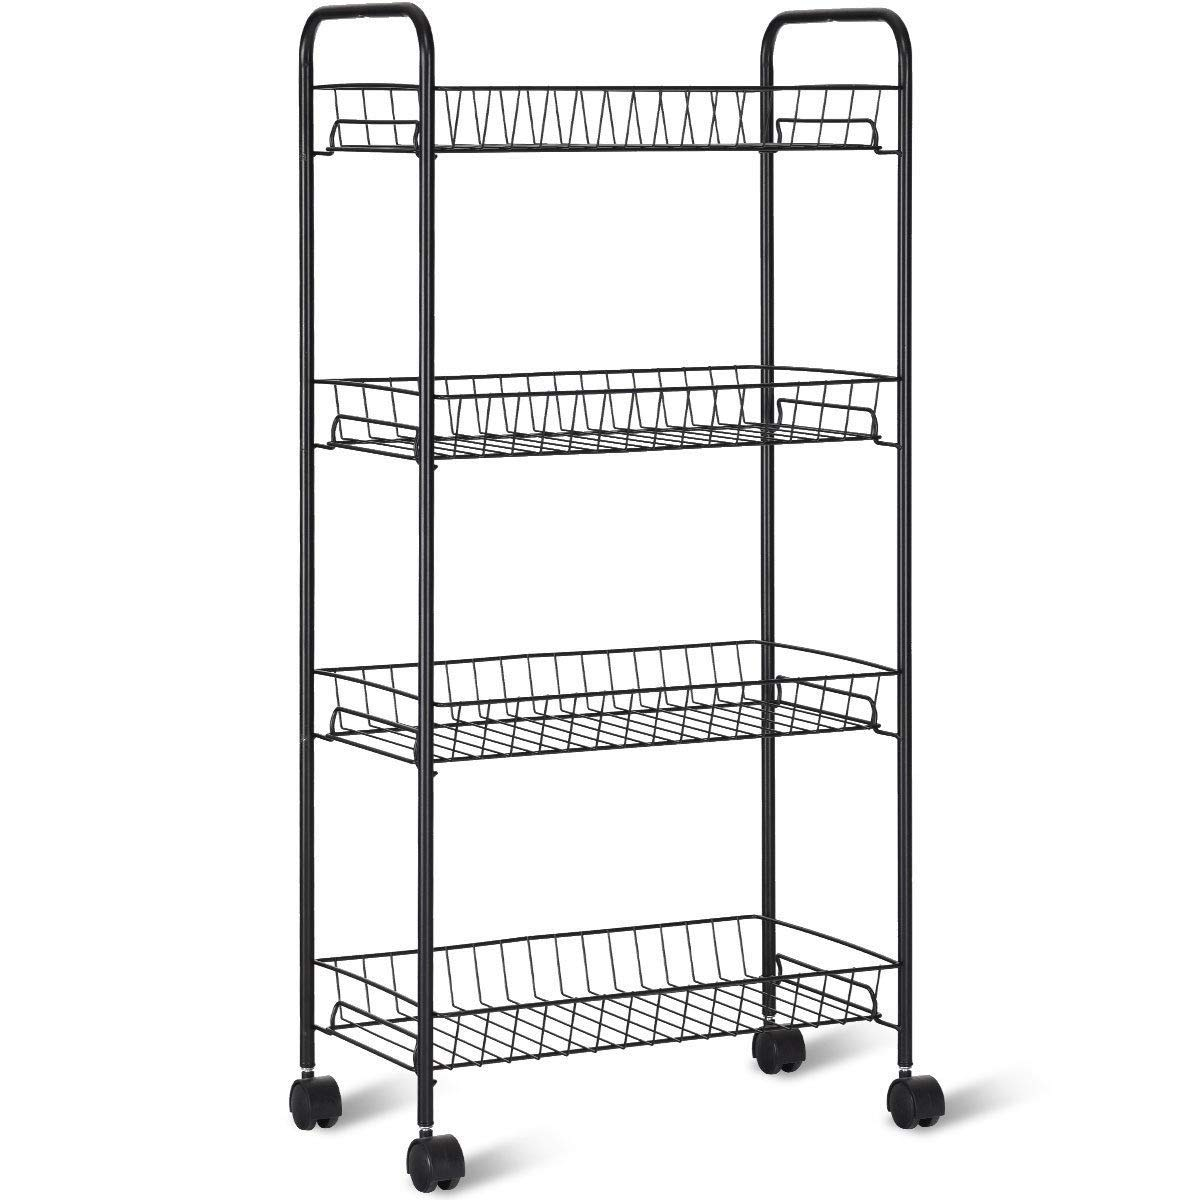 Zwan Black Rolling 4-Tier Metal Wire Utility Trolley Storage Shelf Baskets with Ebook